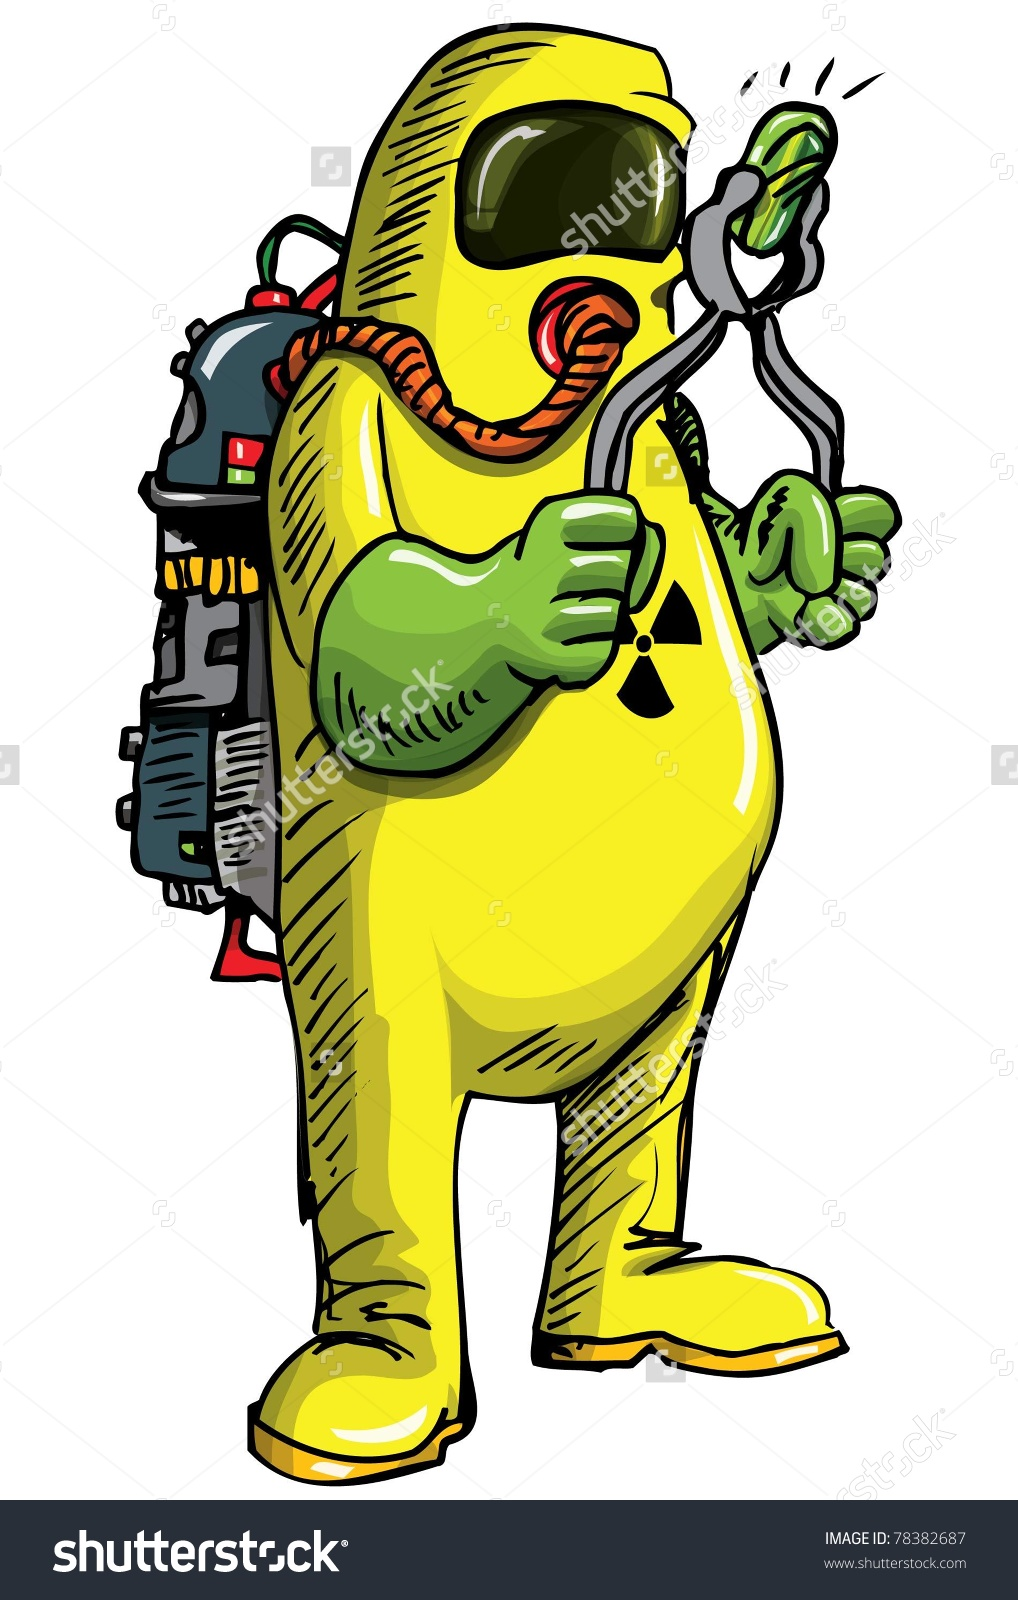 Radioactive clipart #7, Download drawings